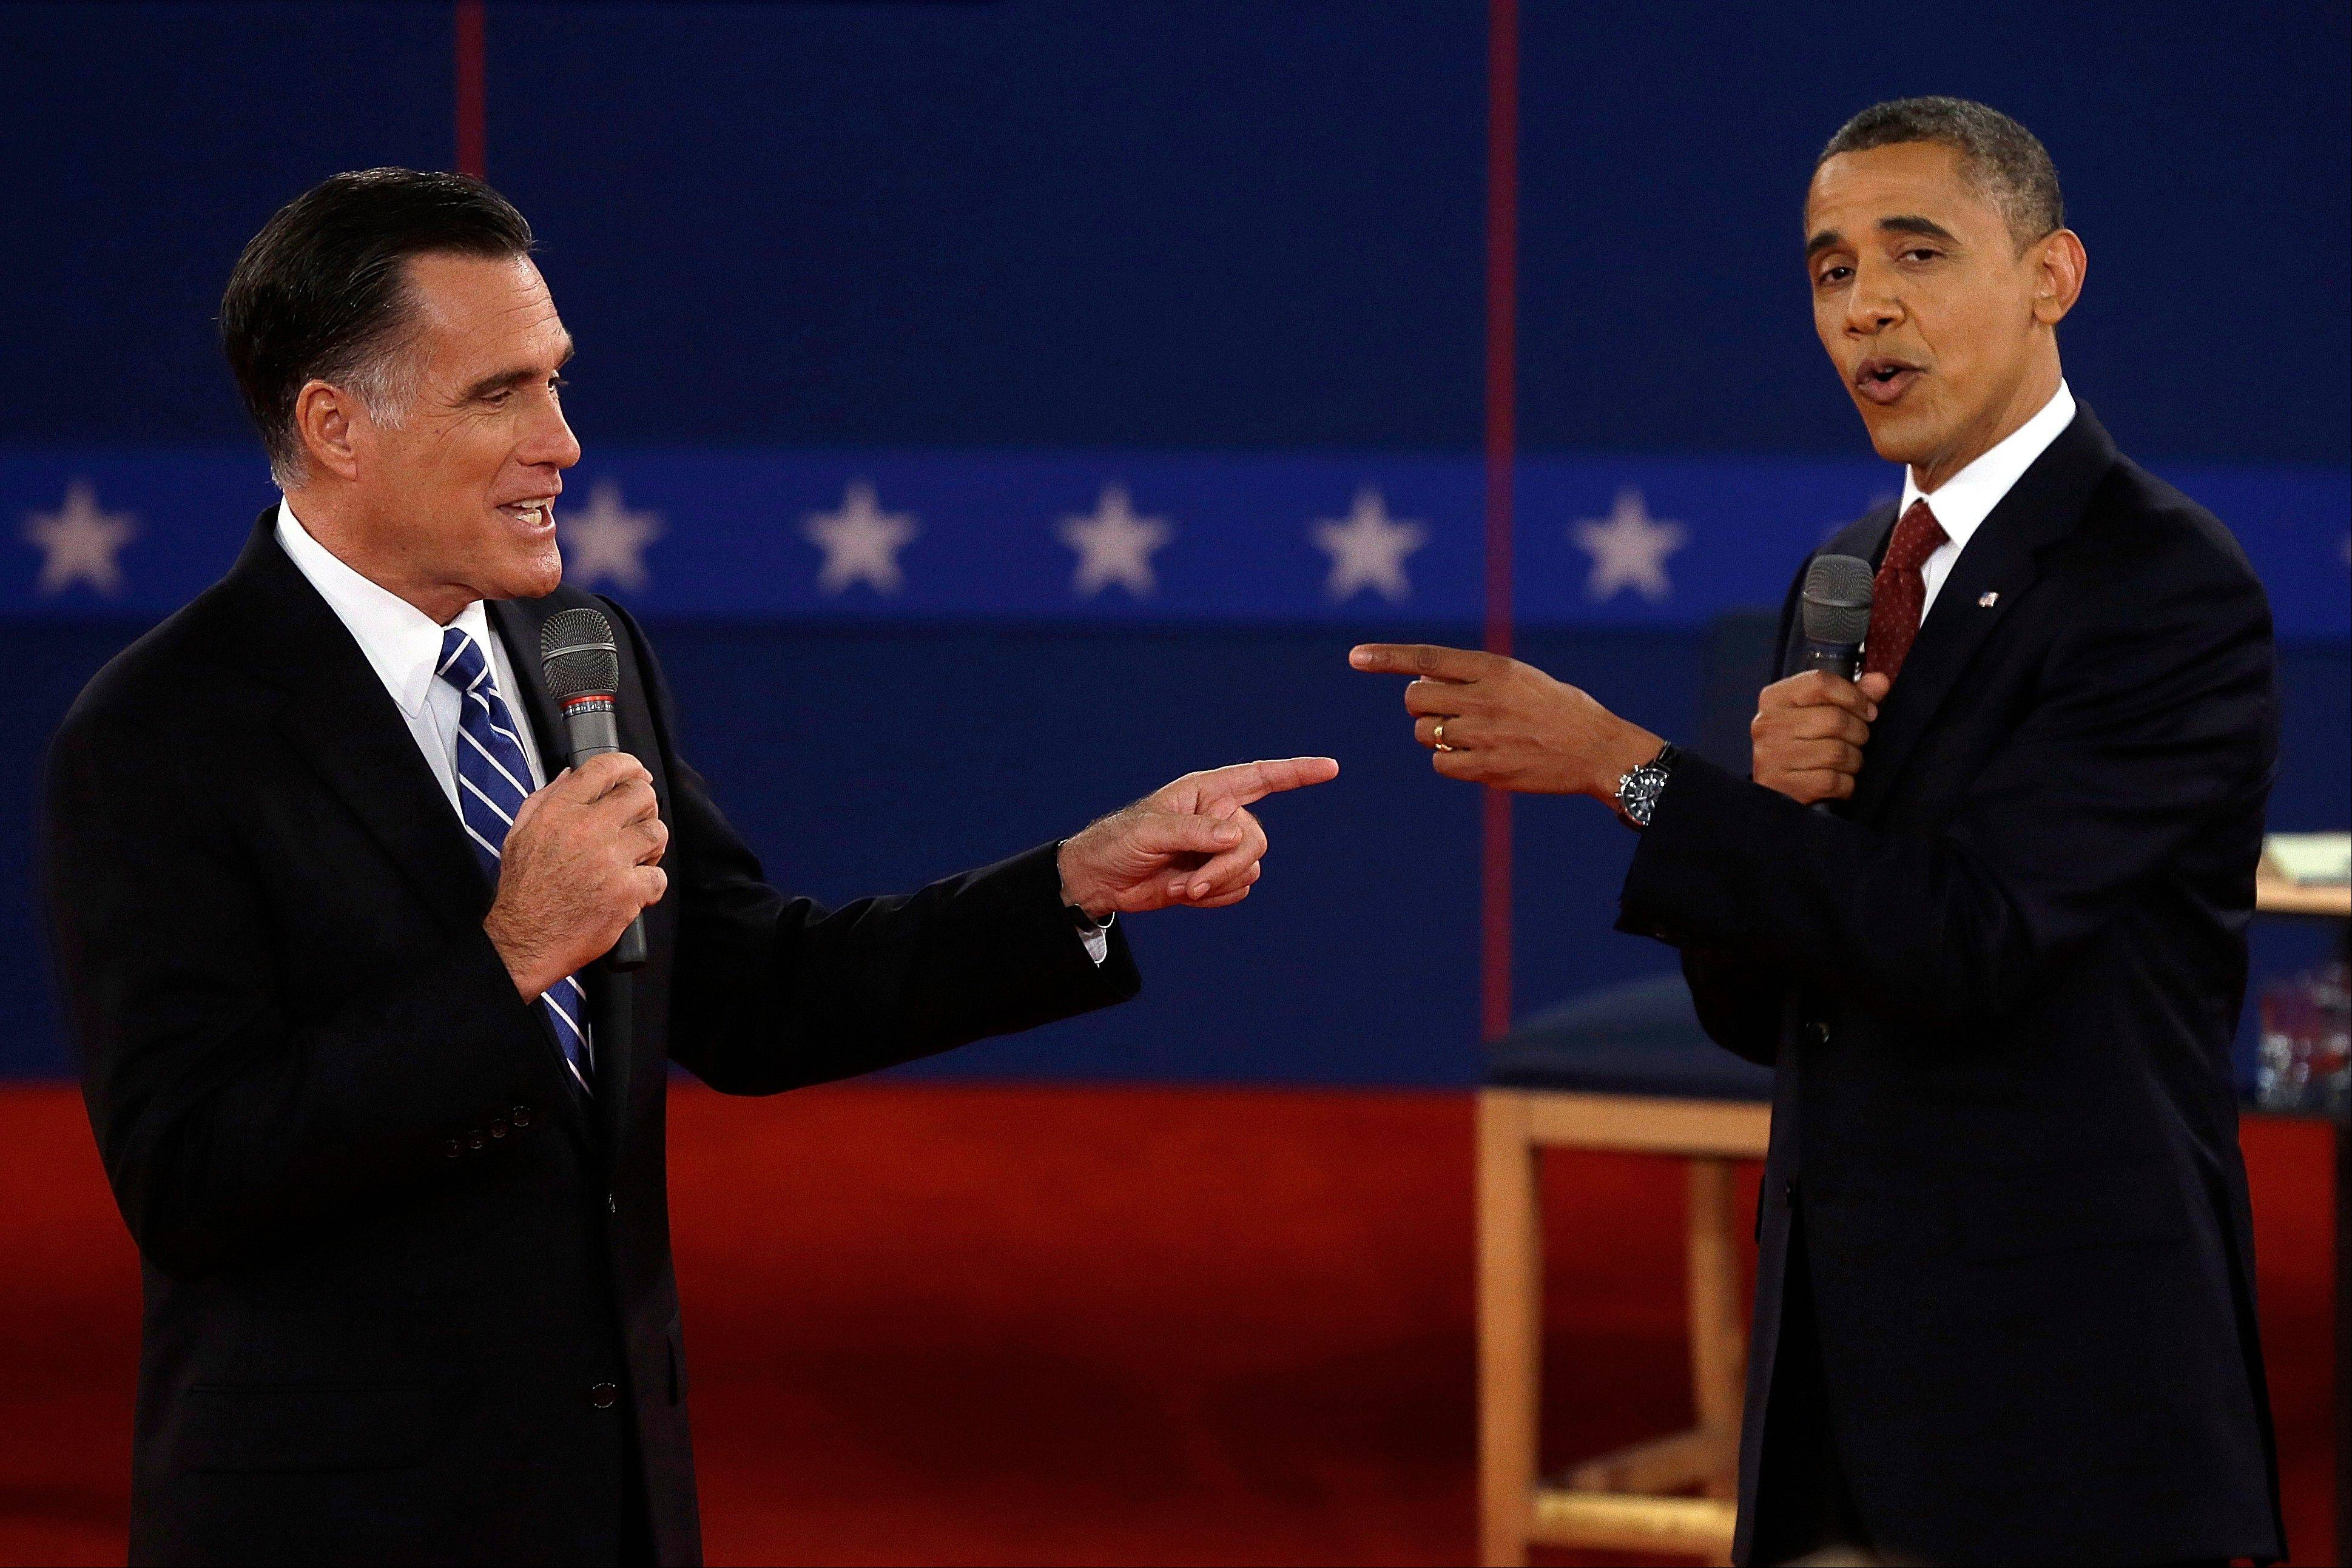 In this Oct. 16 file photo, Republican presidential candidate, former Massachusetts Gov. Mitt Romney and President Barack Obama spar during the second presidential debate at Hofstra University in Hempstead, N.Y.